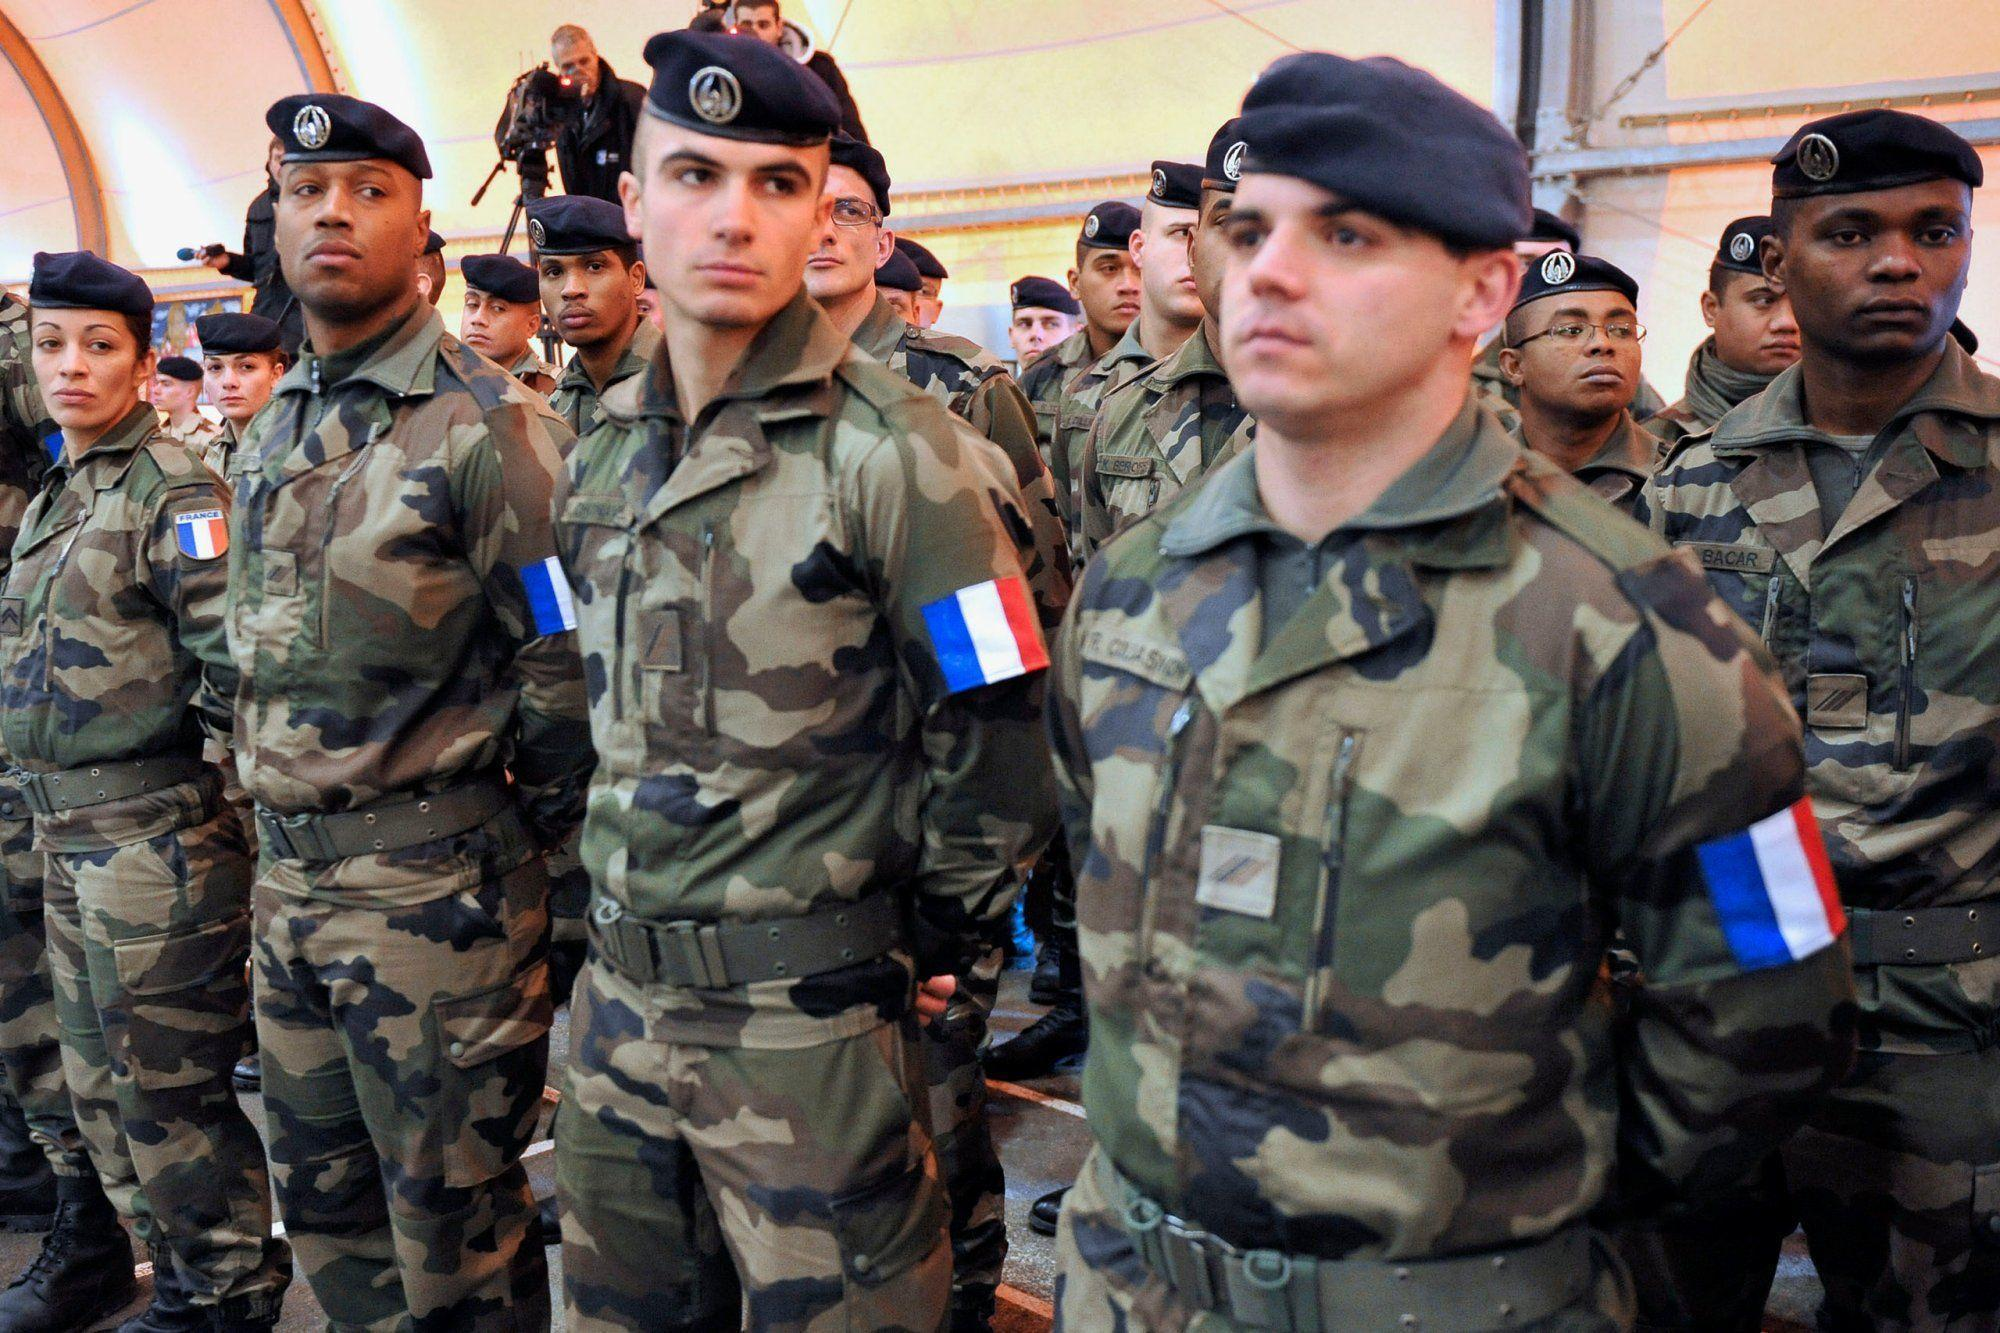 French Army Wallpapers - Wallpaper Cave